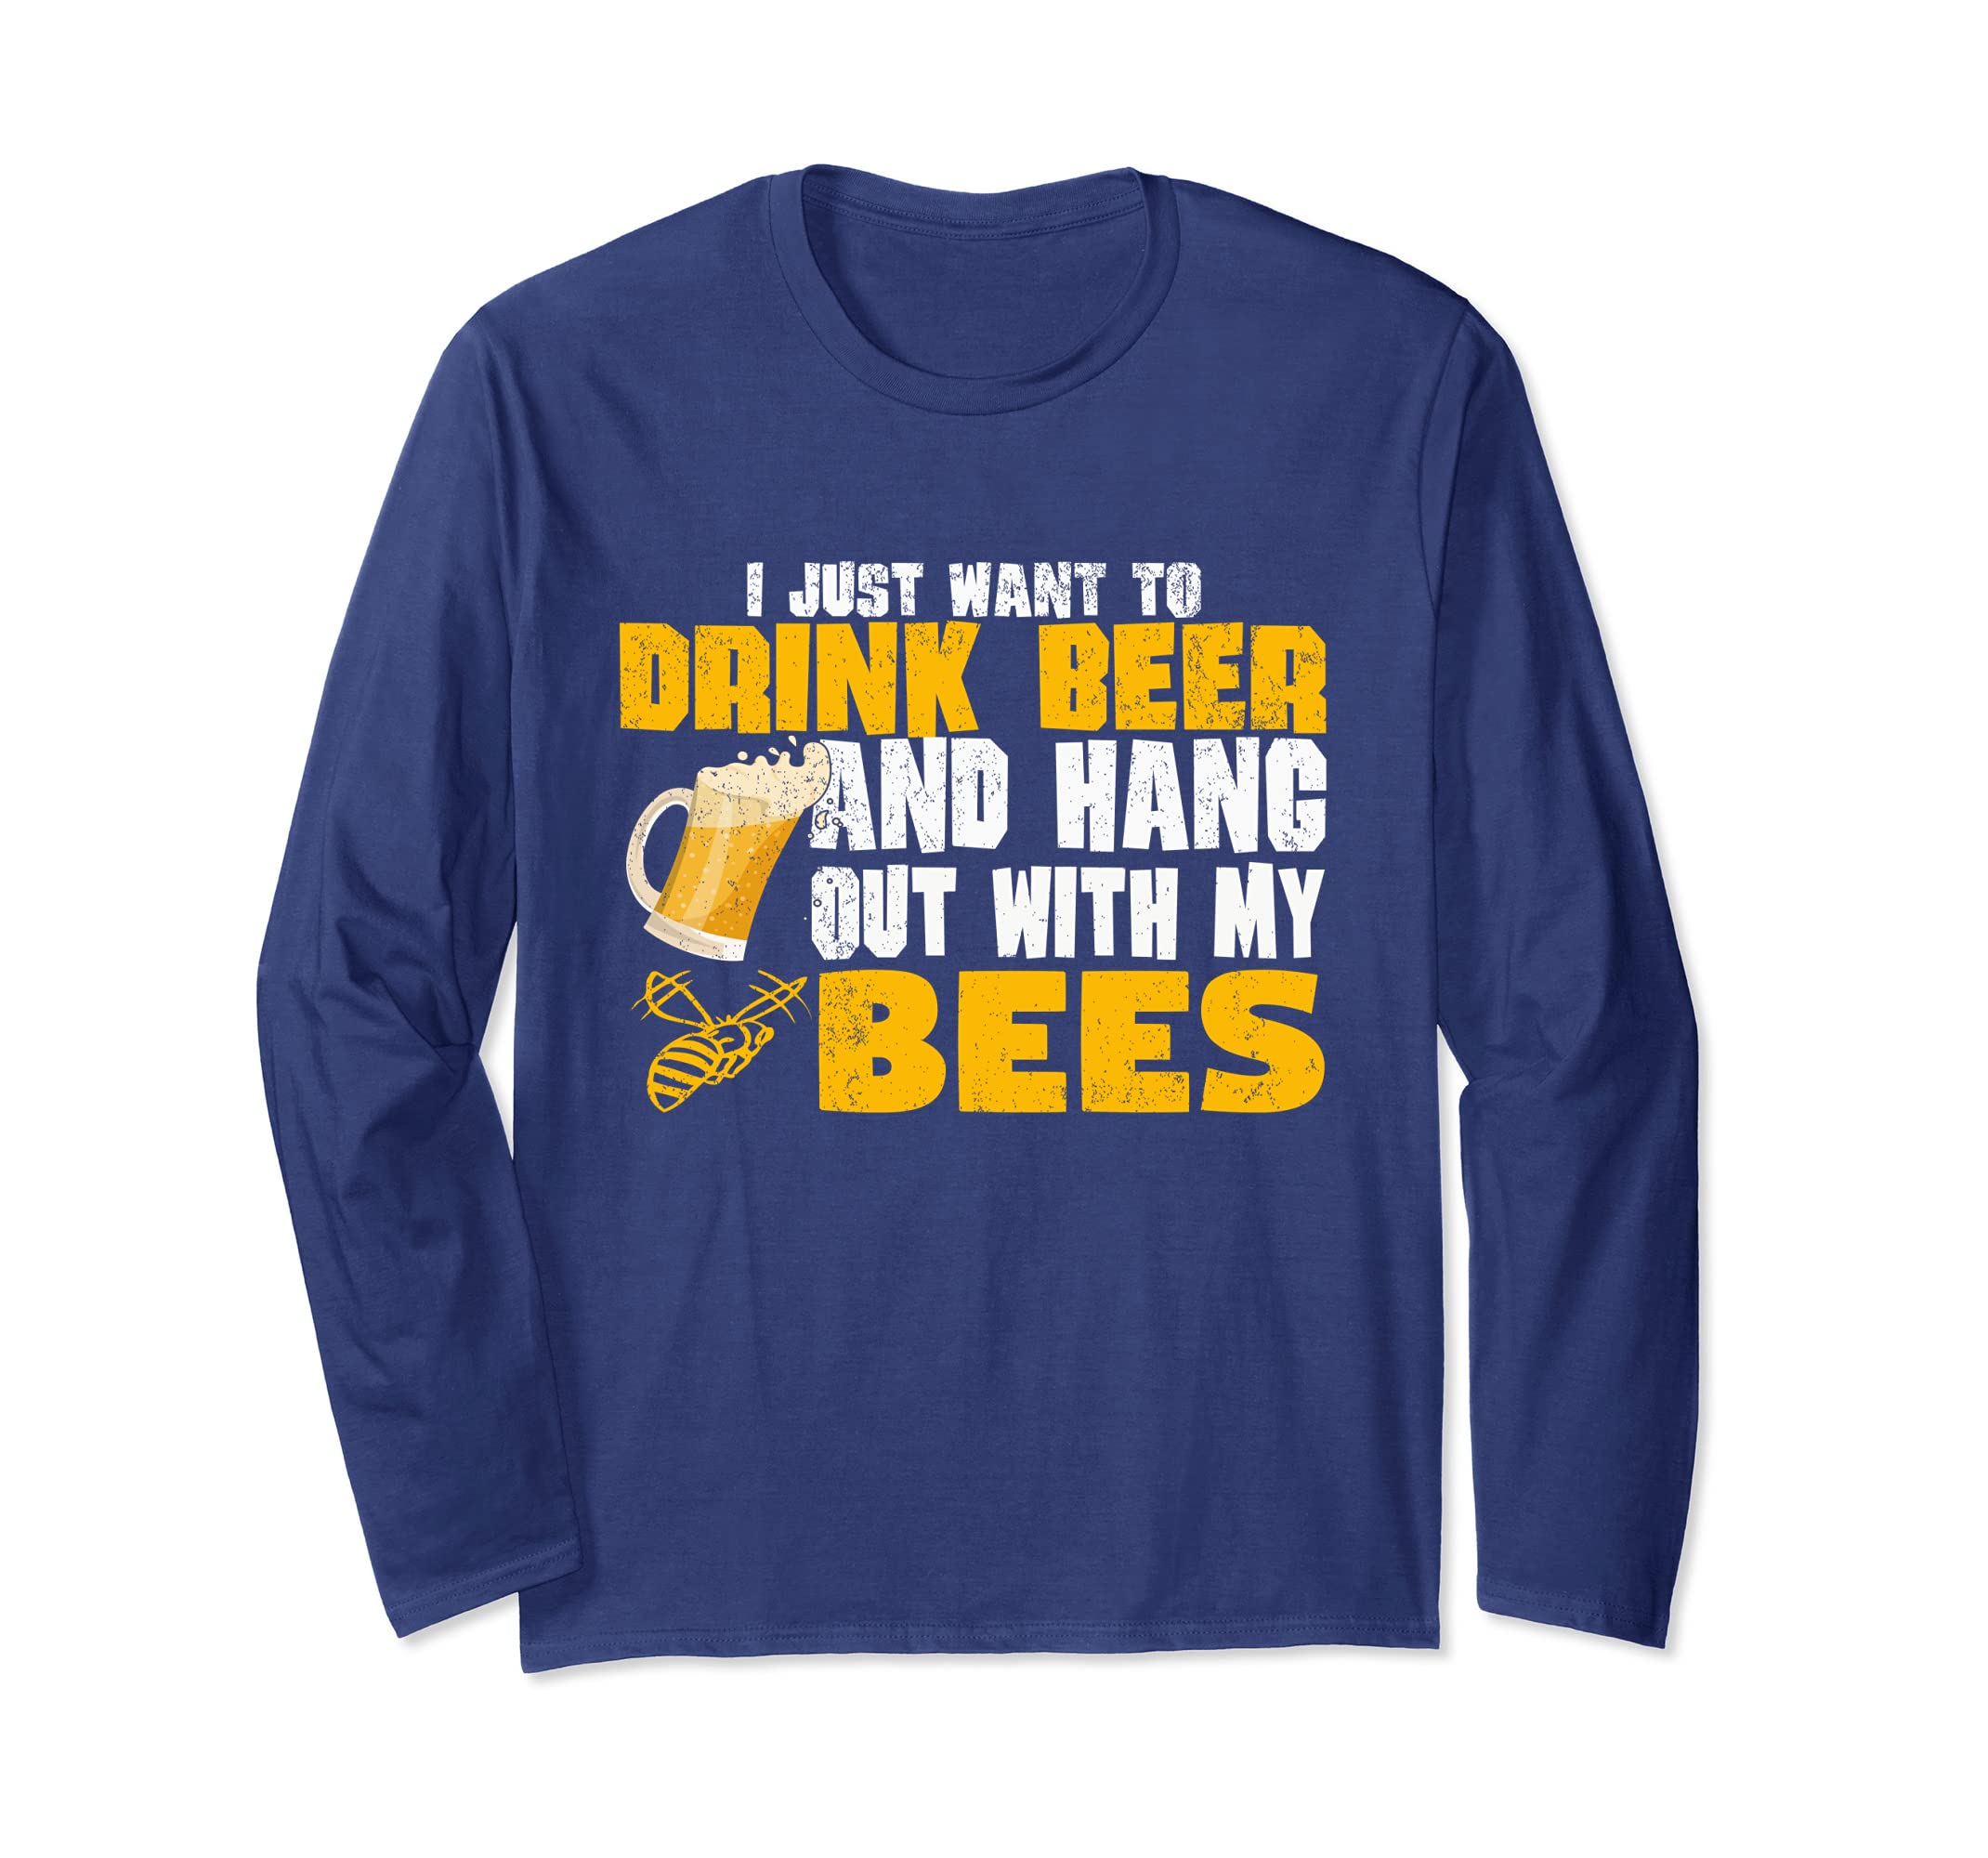 504249cc Amazon.com: Drink Beer And Hang With My Bees Funny Beekeeper T-Shirt LS:  Clothing